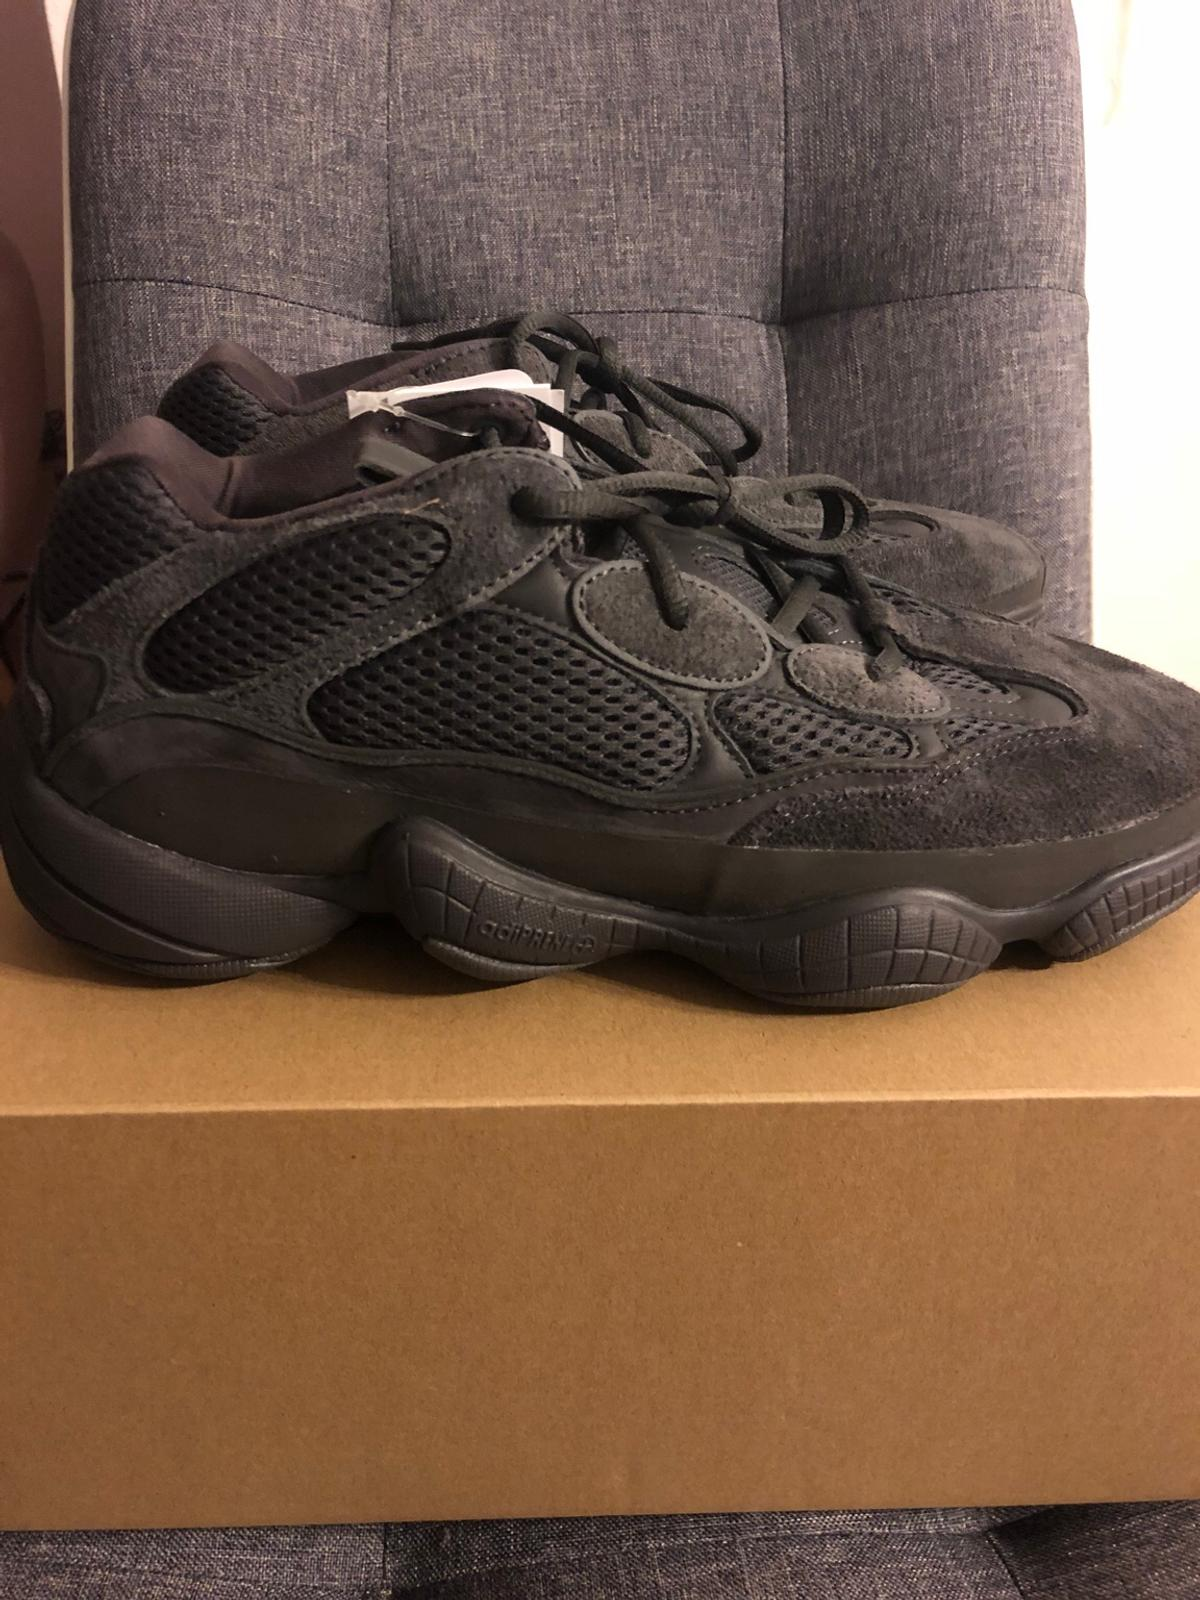 b7facc402ae Adidas Yeezy Boost 500 Black in 30823 Garbsen for €260.00 for sale ...